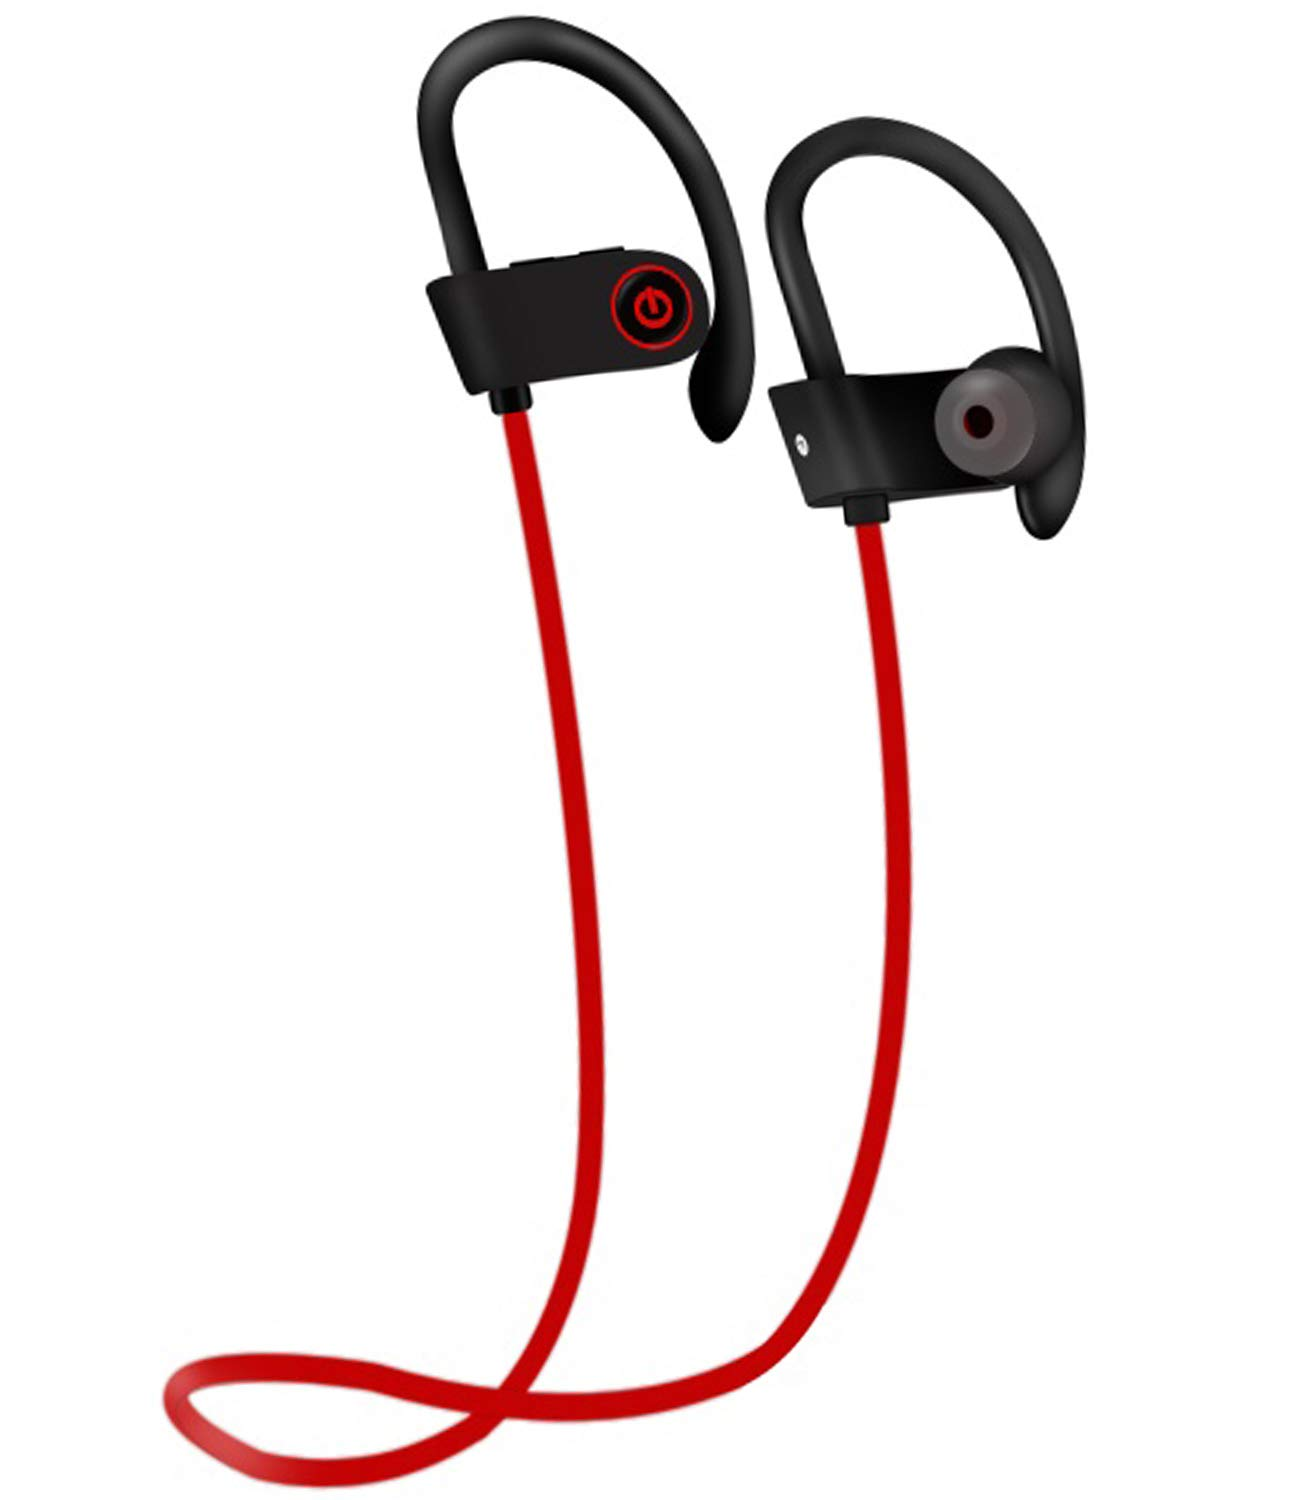 Bluetooth Headphones, IPX7 Waterproof Wireless Earbuds with Ear Hooks & Mic, HD Stereo in-Ear Sports Earphones Gym Running Workout, 7 Hours Battery Noise Isolating Headsets